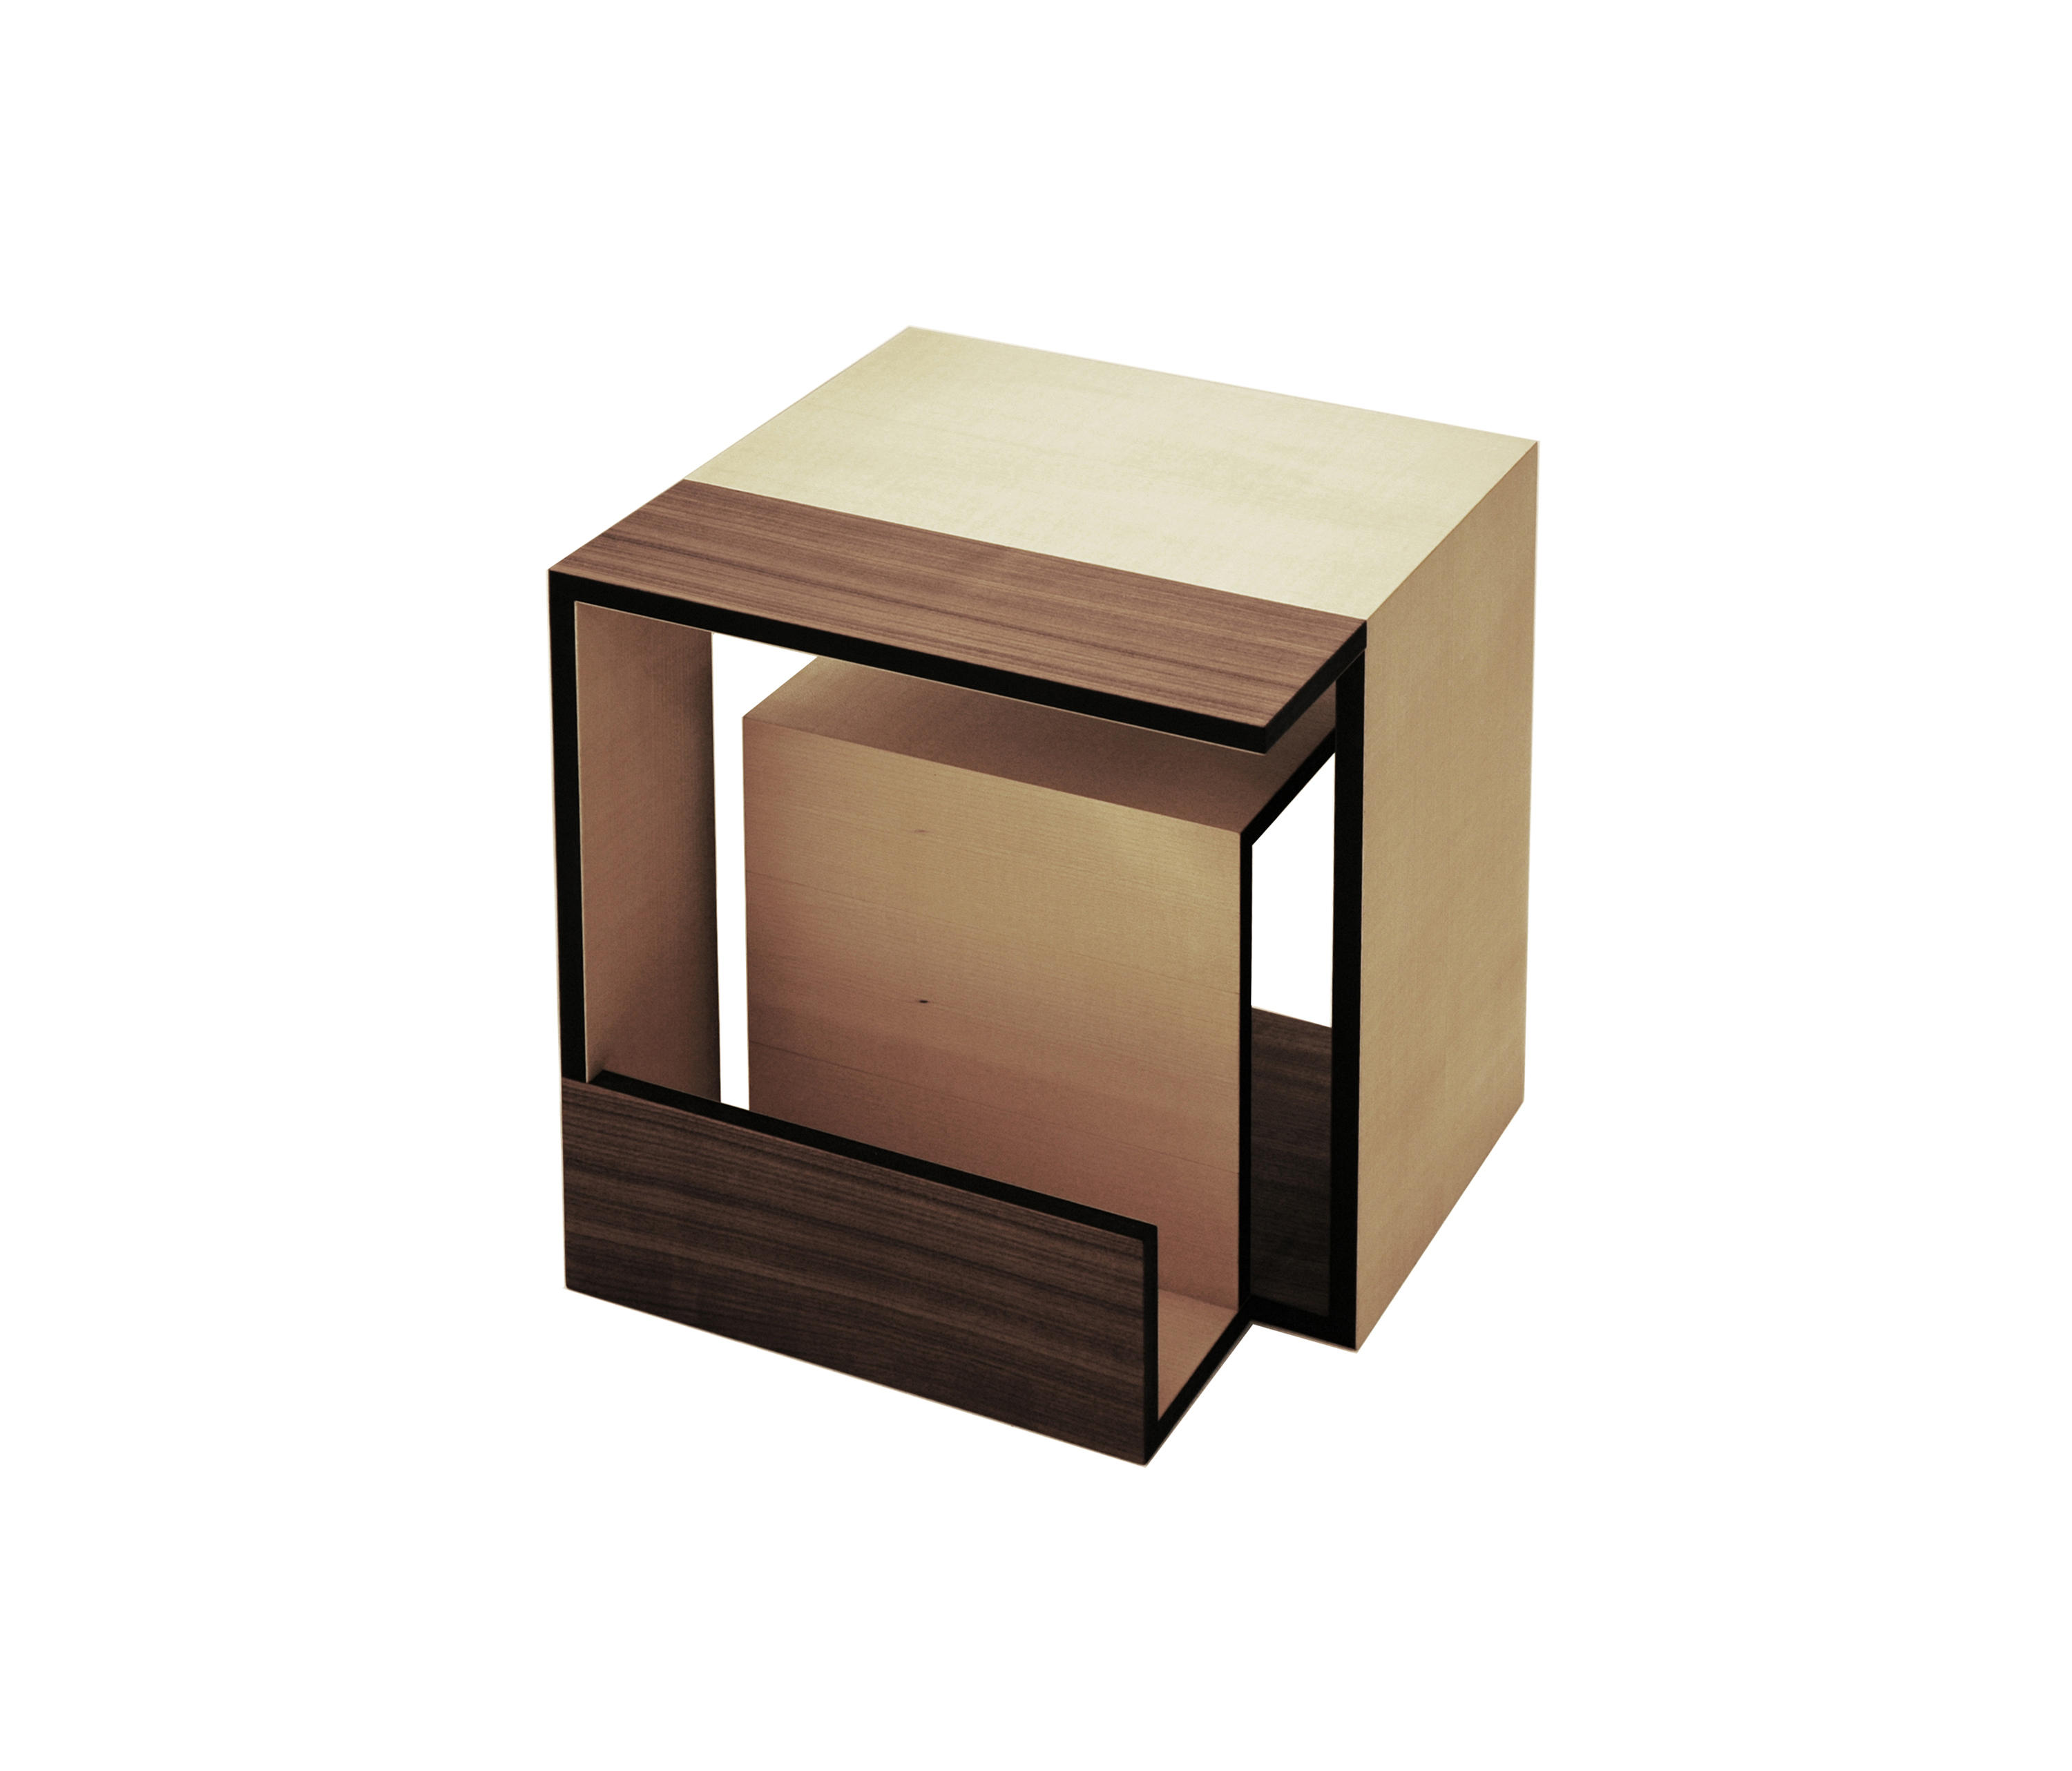 moebius cube side tables from xbritt moebel architonic. Black Bedroom Furniture Sets. Home Design Ideas